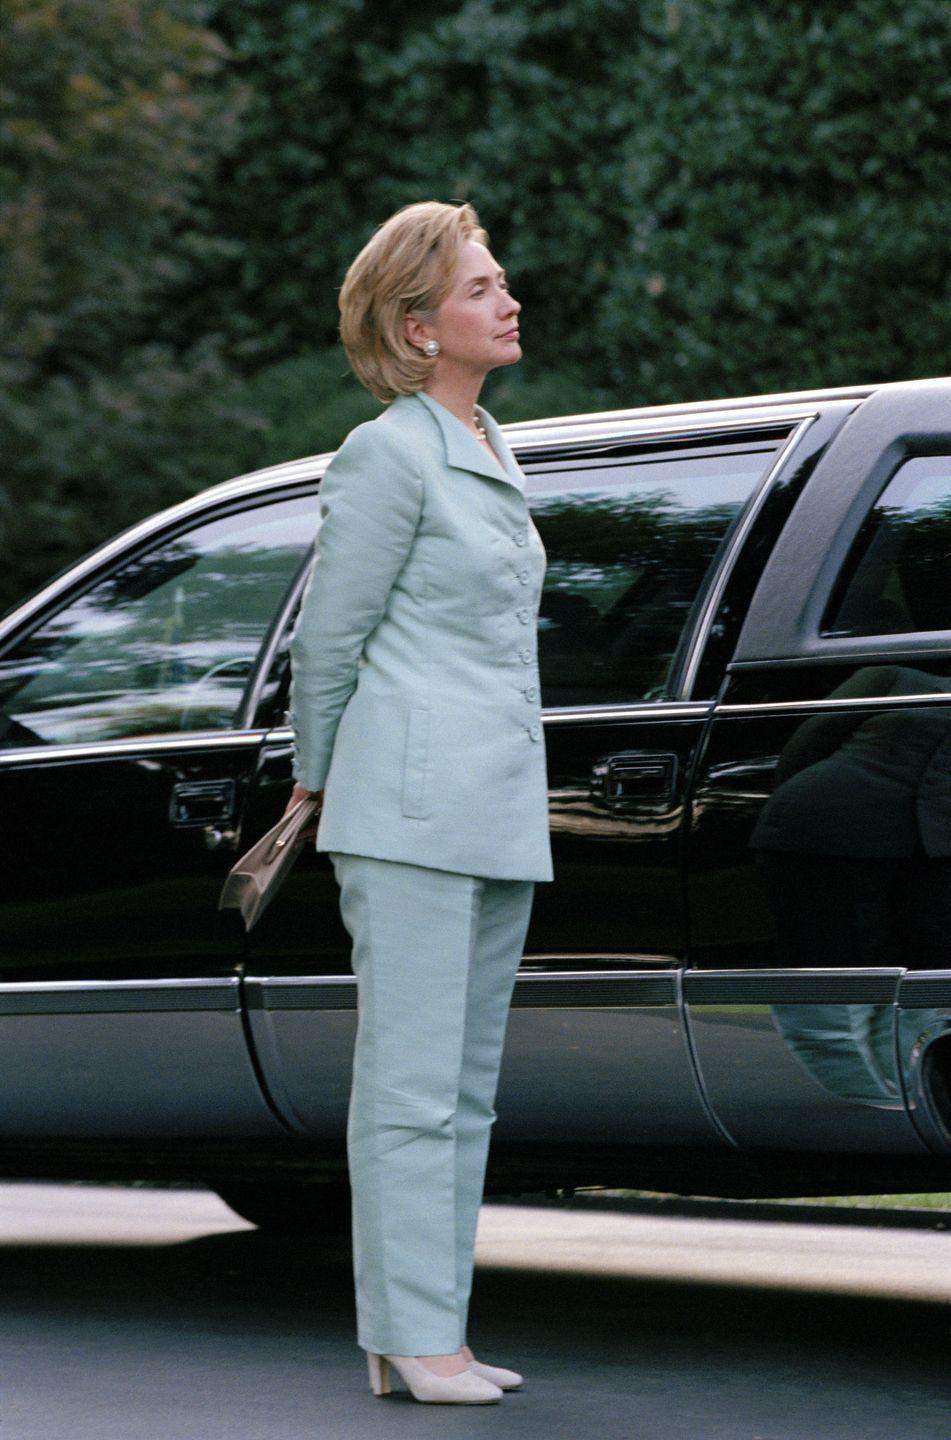 "<p>Hillary Clinton's pantsuits have been <a href=""https://www.bustle.com/articles/86973-5-times-hillary-clintons-style-was-criticized-instead-of-her-ideas"" rel=""nofollow noopener"" target=""_blank"" data-ylk=""slk:a running joke"" class=""link rapid-noclick-resp"">a running joke</a> since her days in the White House with former President Bill Clinton. There's still a handful of people who make fun of her <a href=""https://www.nytimes.com/2016/09/07/us/politics/donald-trump-says-hillary-clinton-doesnt-have-a-presidential-look.html?mtrref=www.google.com&gwh=04FDA53F54BE25537B9A322B64EDA2C1&gwt=pay"" rel=""nofollow noopener"" target=""_blank"" data-ylk=""slk:appearance"" class=""link rapid-noclick-resp"">appearance</a>—including Donald Trump. </p>"